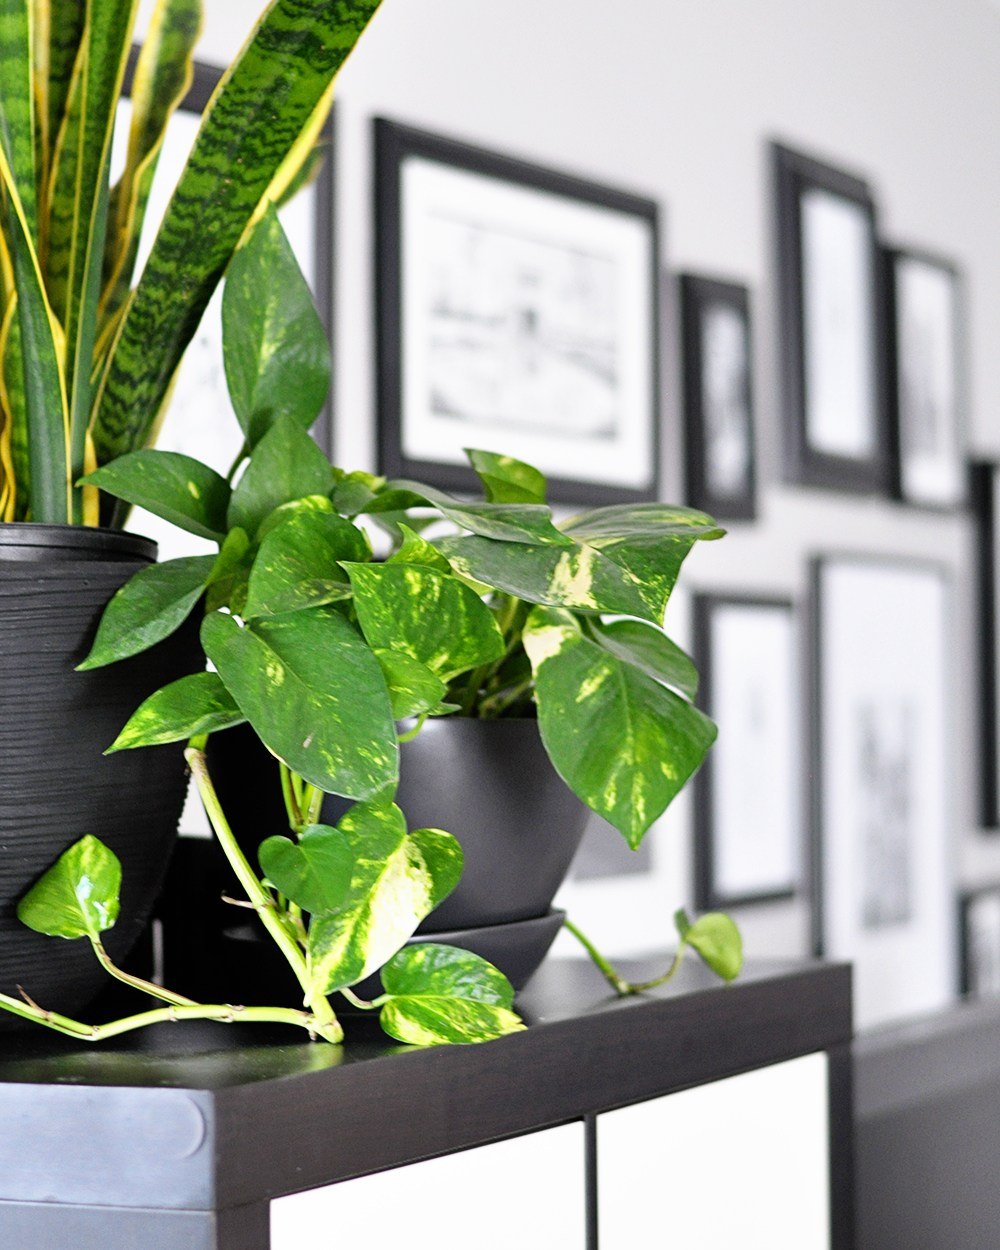 These Are The Best Bedroom Plants to Help You Get a Better Sleep 4 Bedroom Plants These Are The Best Bedroom Plants to Help You Get a Better Sleep These Are The Best Bedroom Plants to Help You Get a Better Sleep 4 1